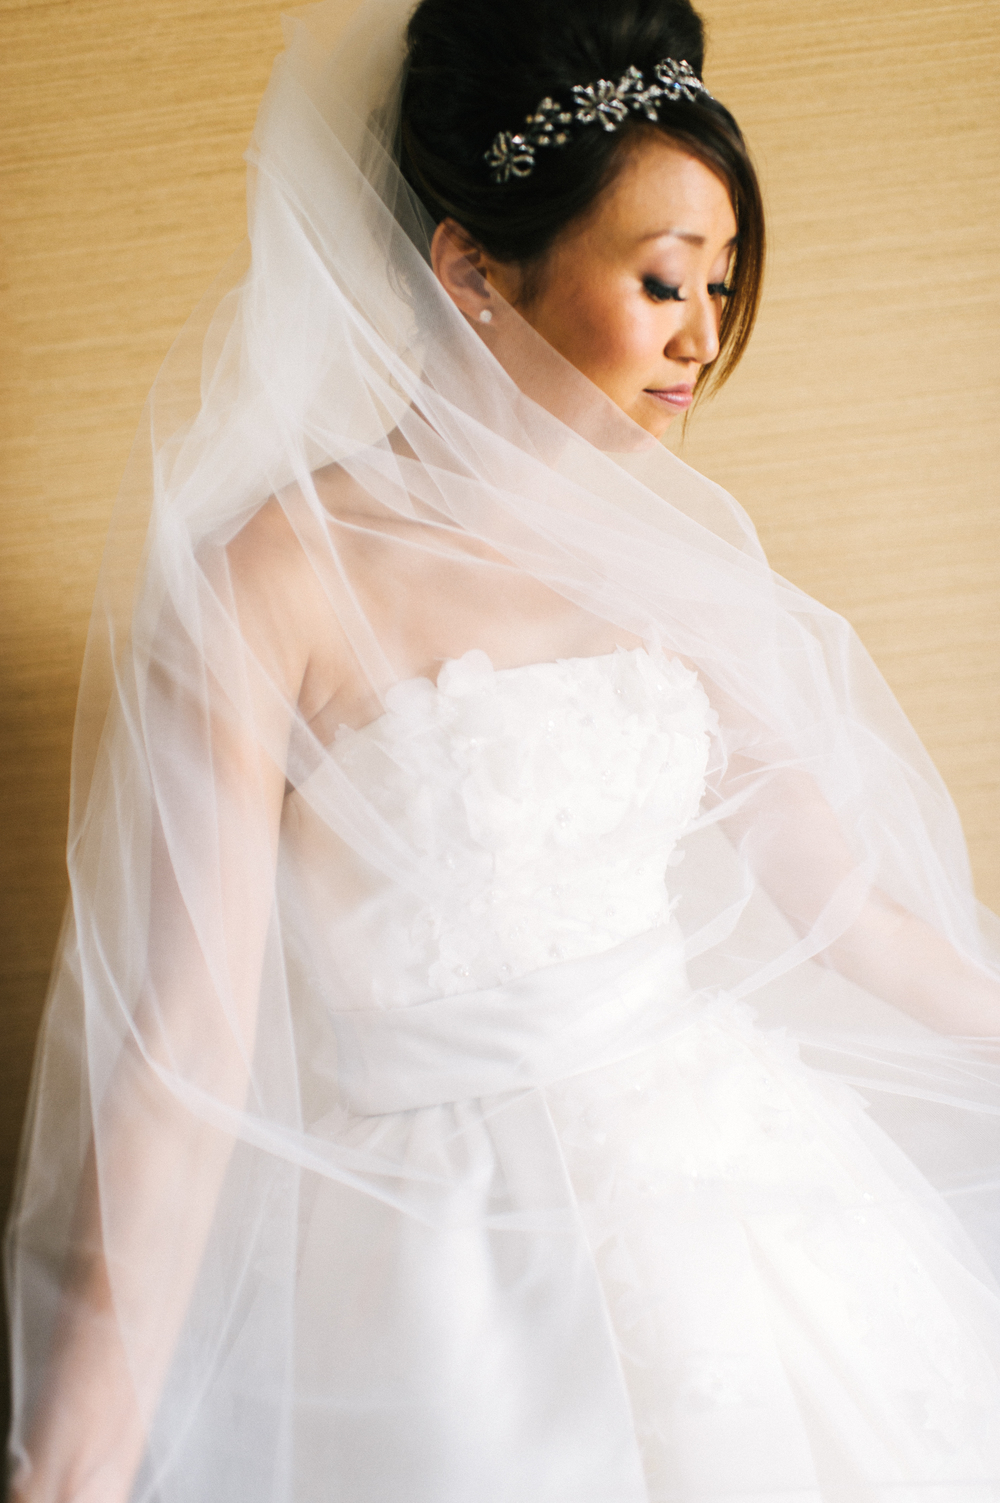 Michelle Garibay Events | Modern Vintage Hawaii Wedding | Oahu Destination Wedding | Couture Bride's Dress